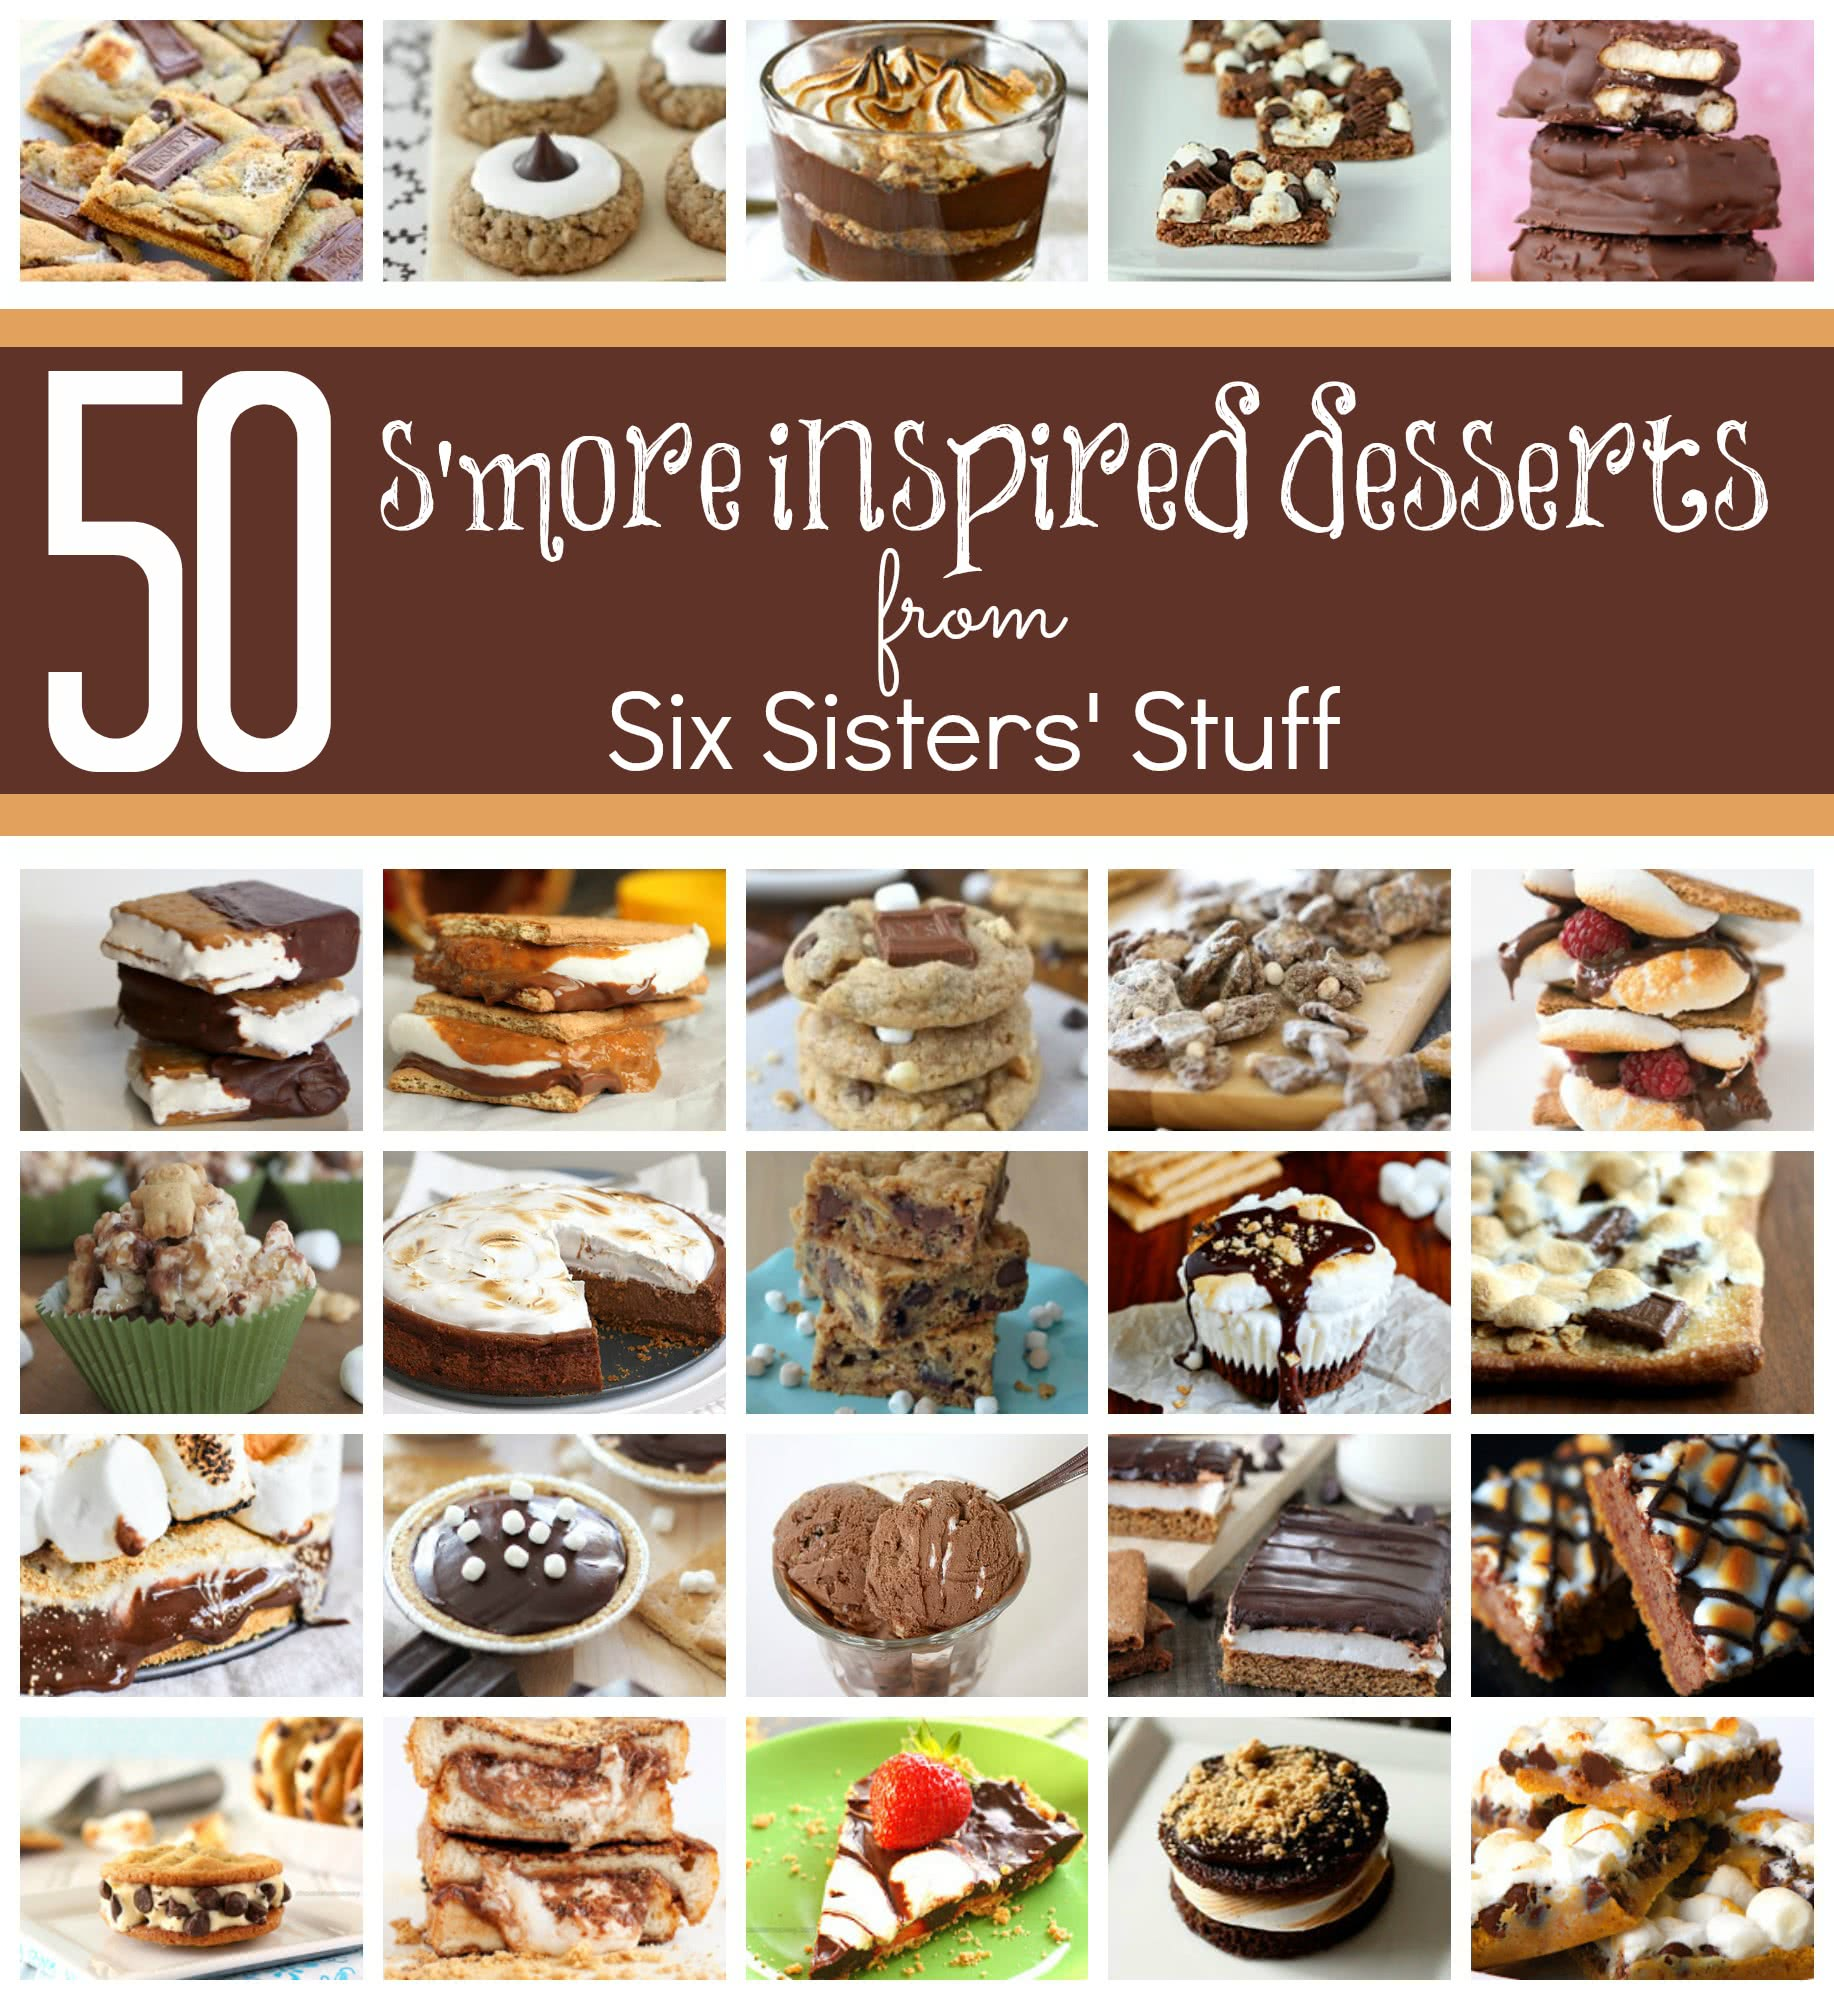 50 S'more Inspired Desserts